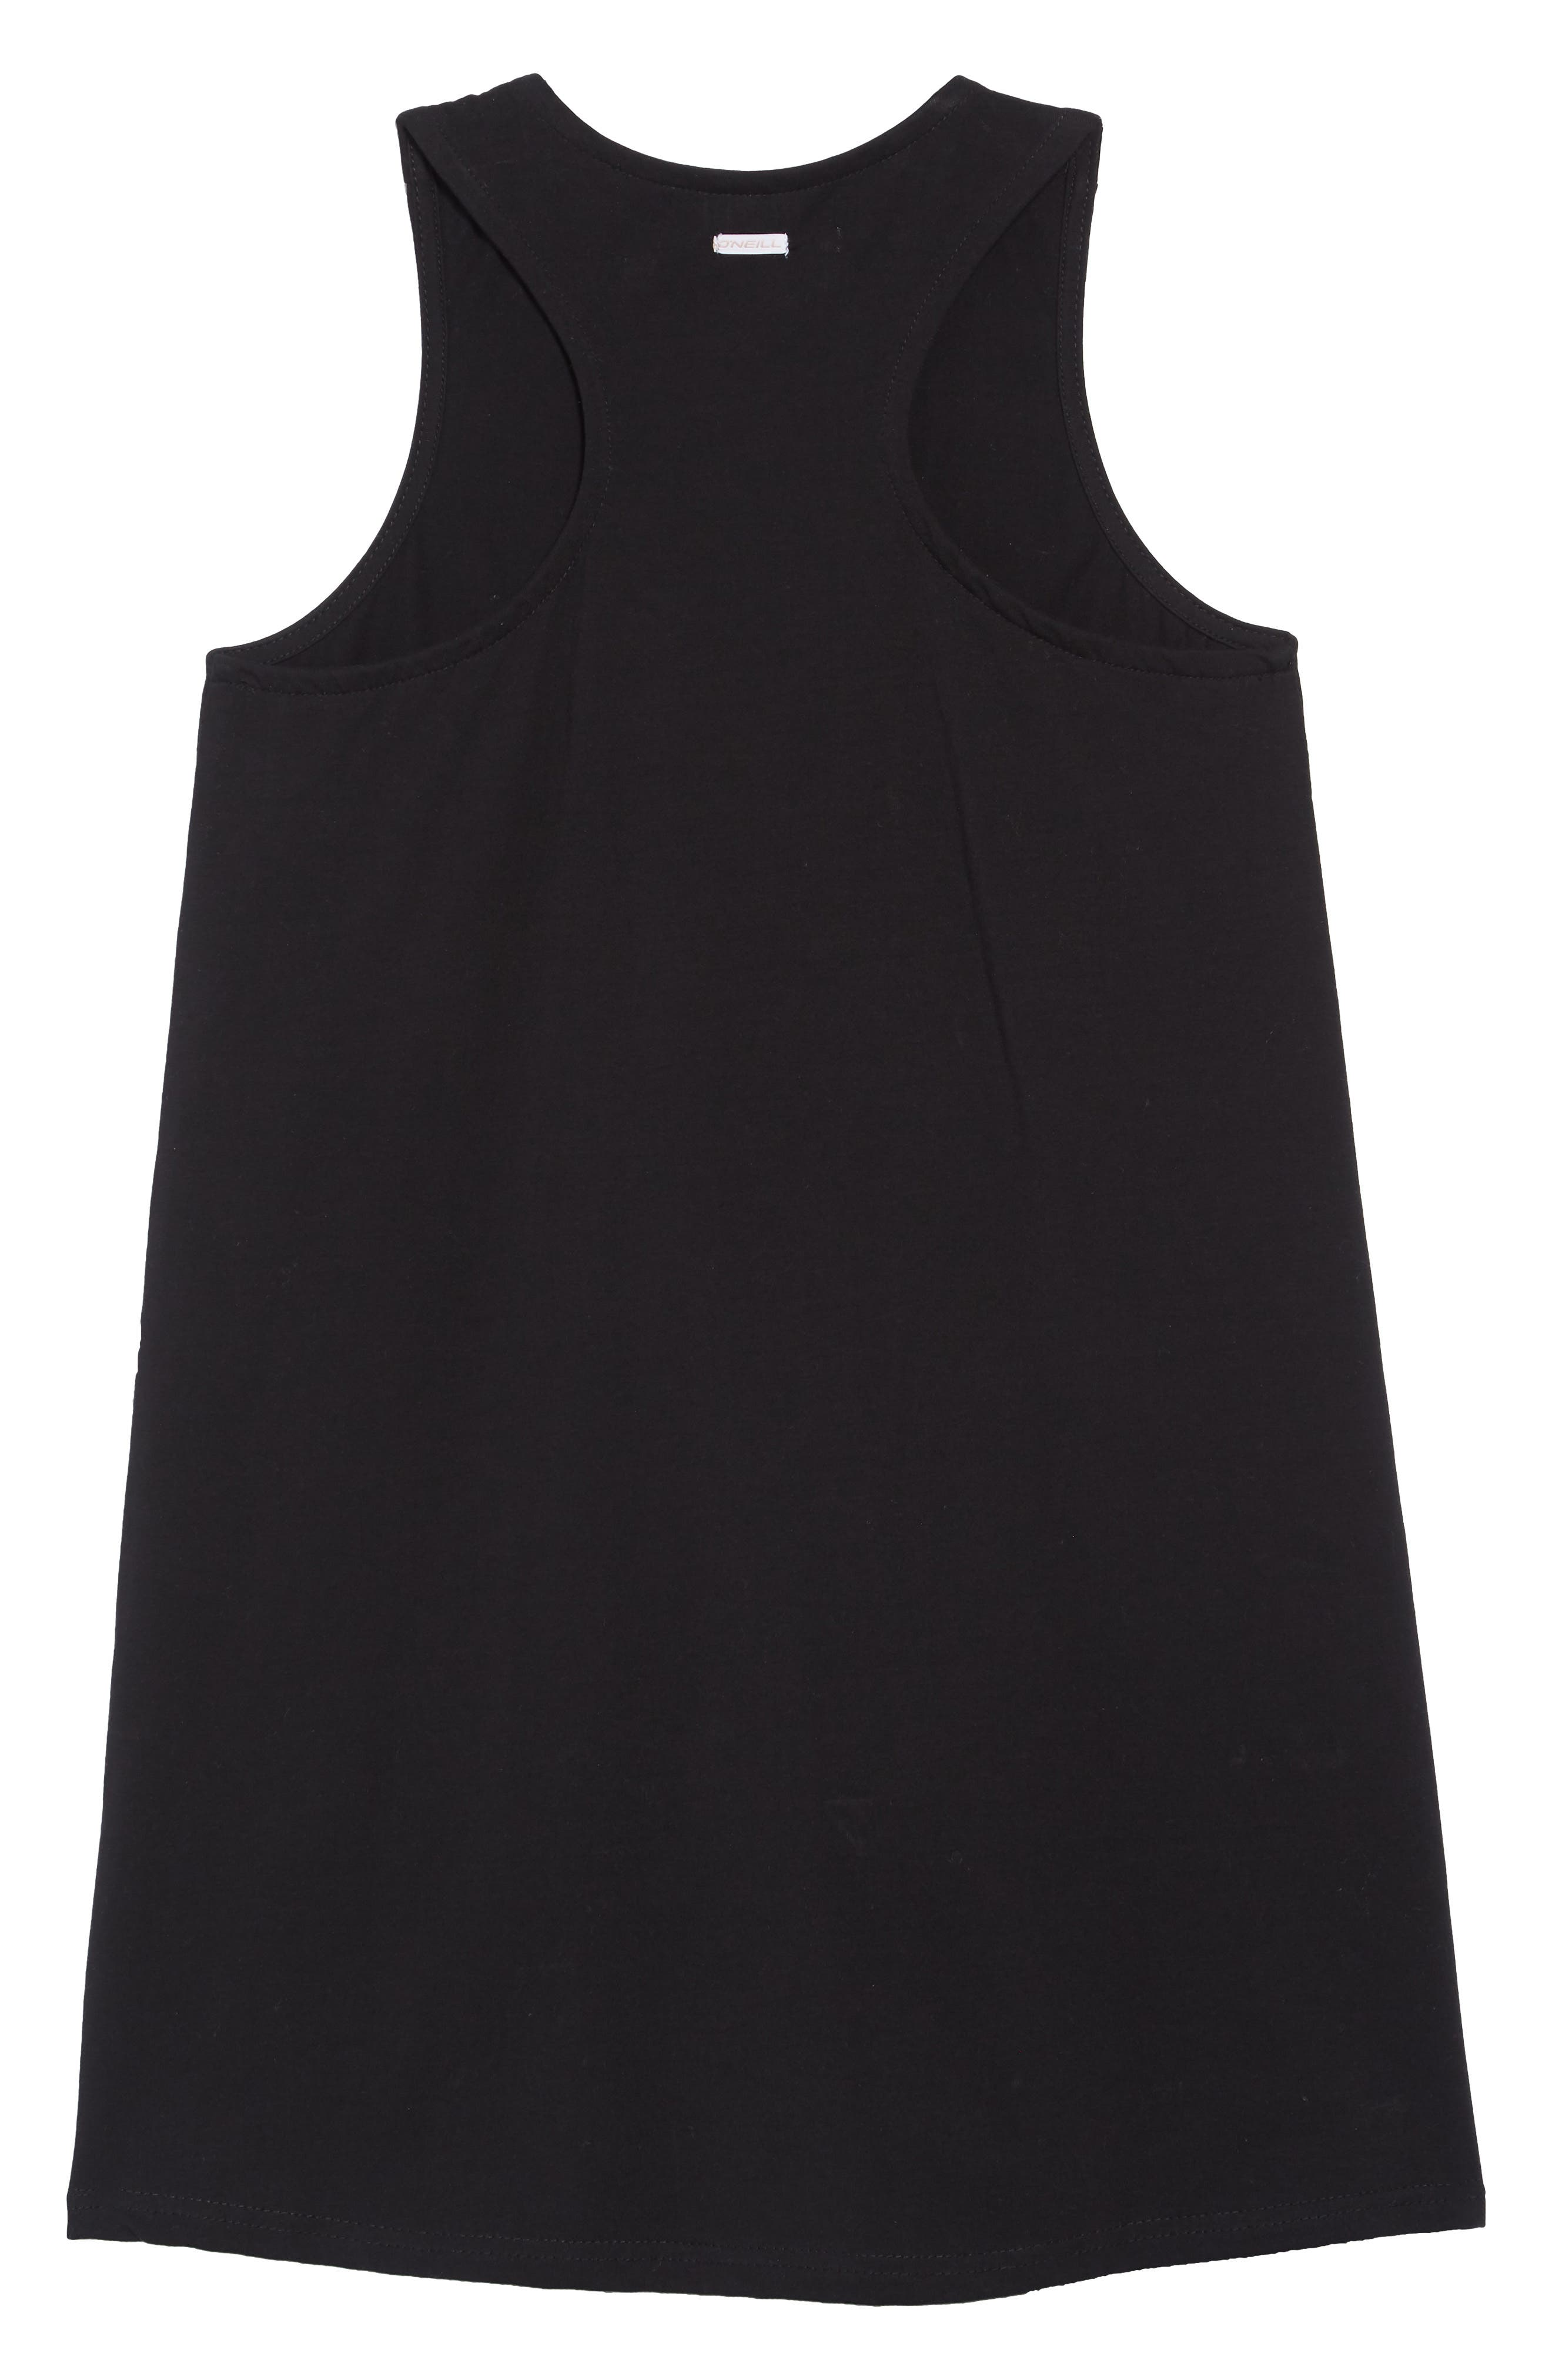 O'NEILL, Cannon Knit Tank Dress, Alternate thumbnail 4, color, BLACK